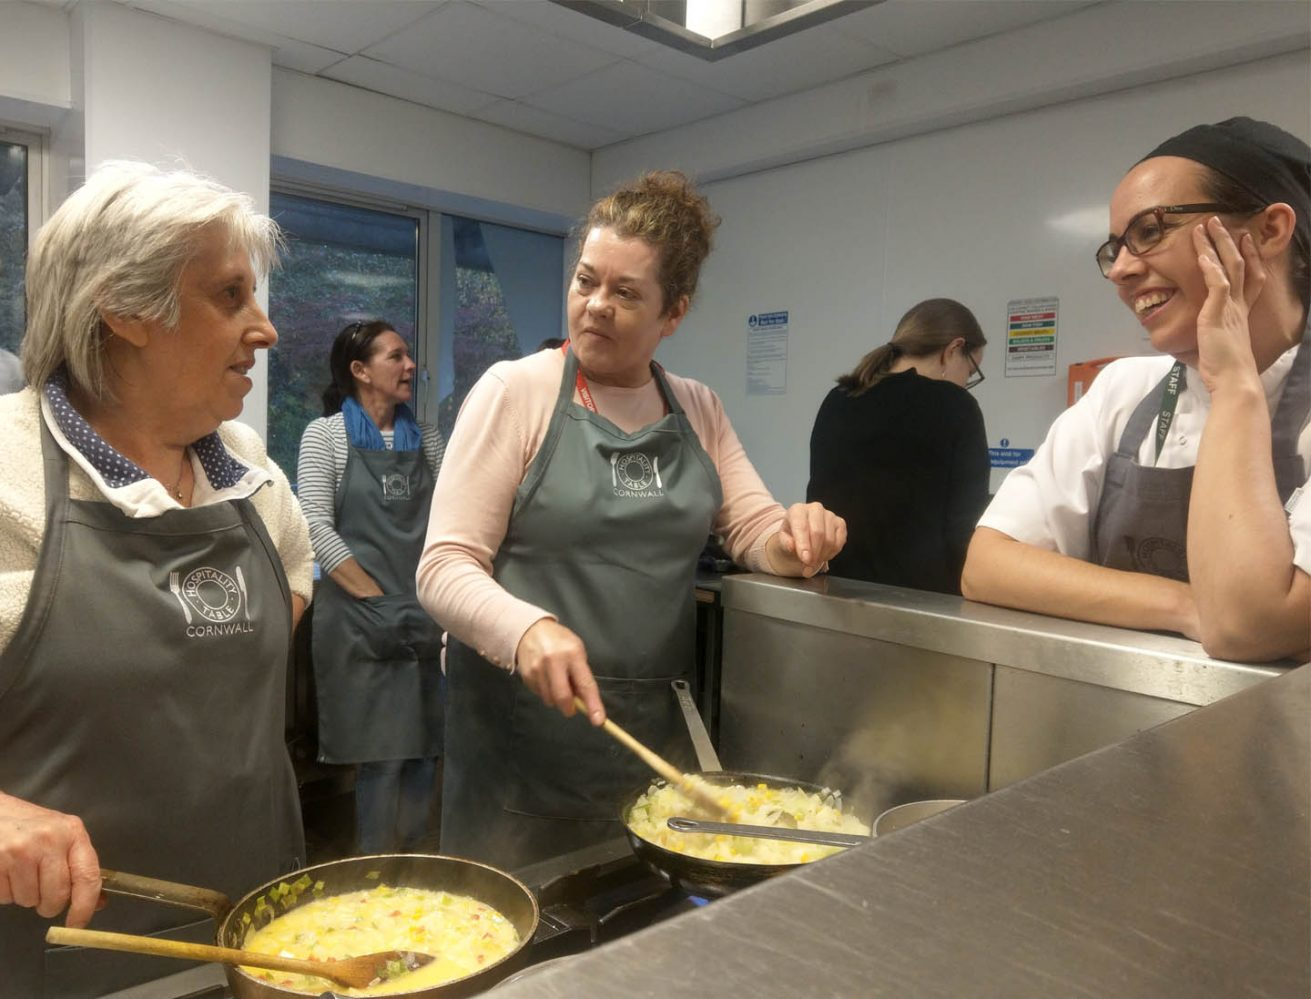 A picture of 3 ladies in aprons preparing food and chatting